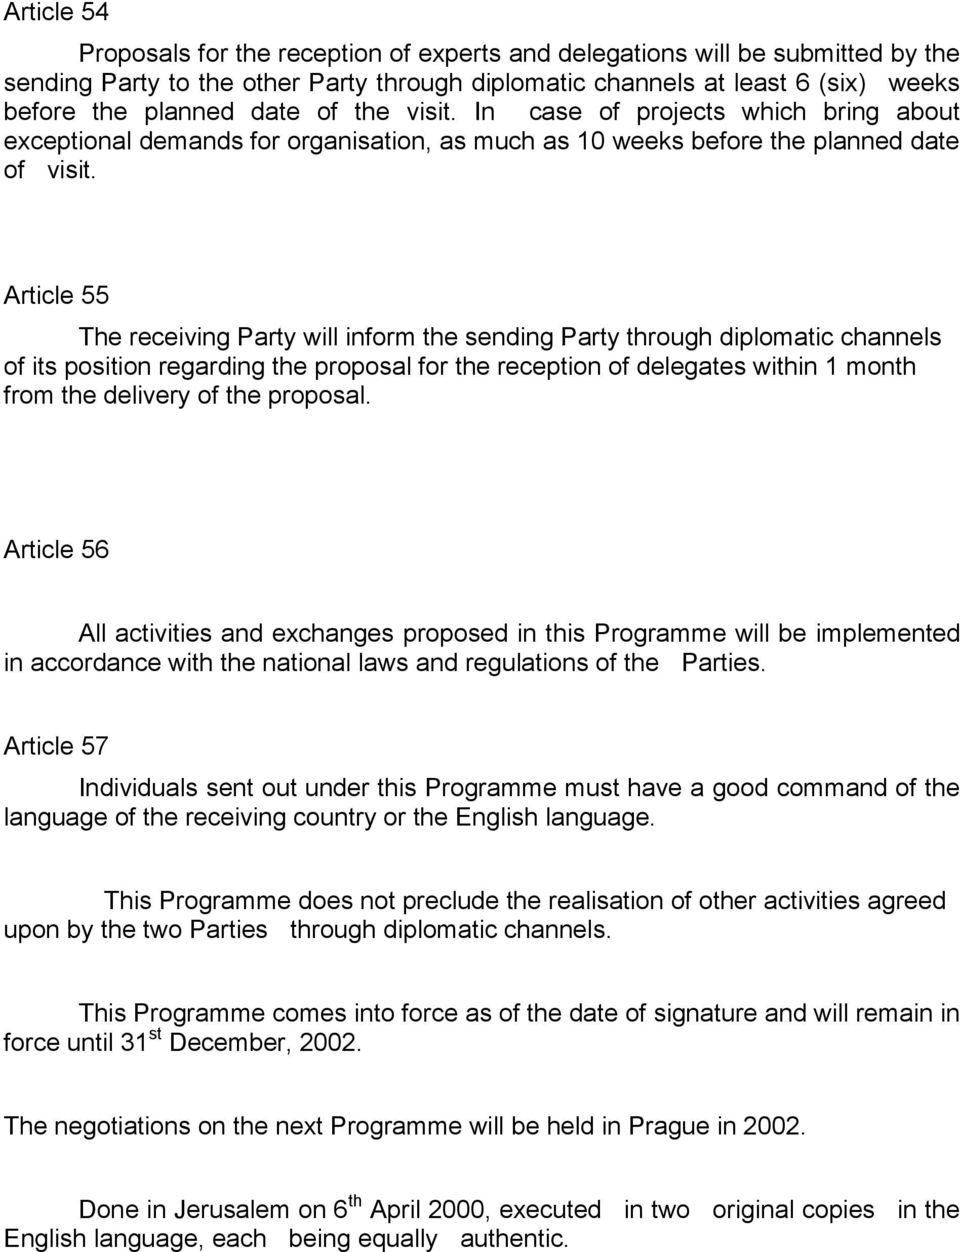 Article 55 The receiving Party will inform the sending Party through diplomatic channels of its position regarding the proposal for the reception of delegates within 1 month from the delivery of the